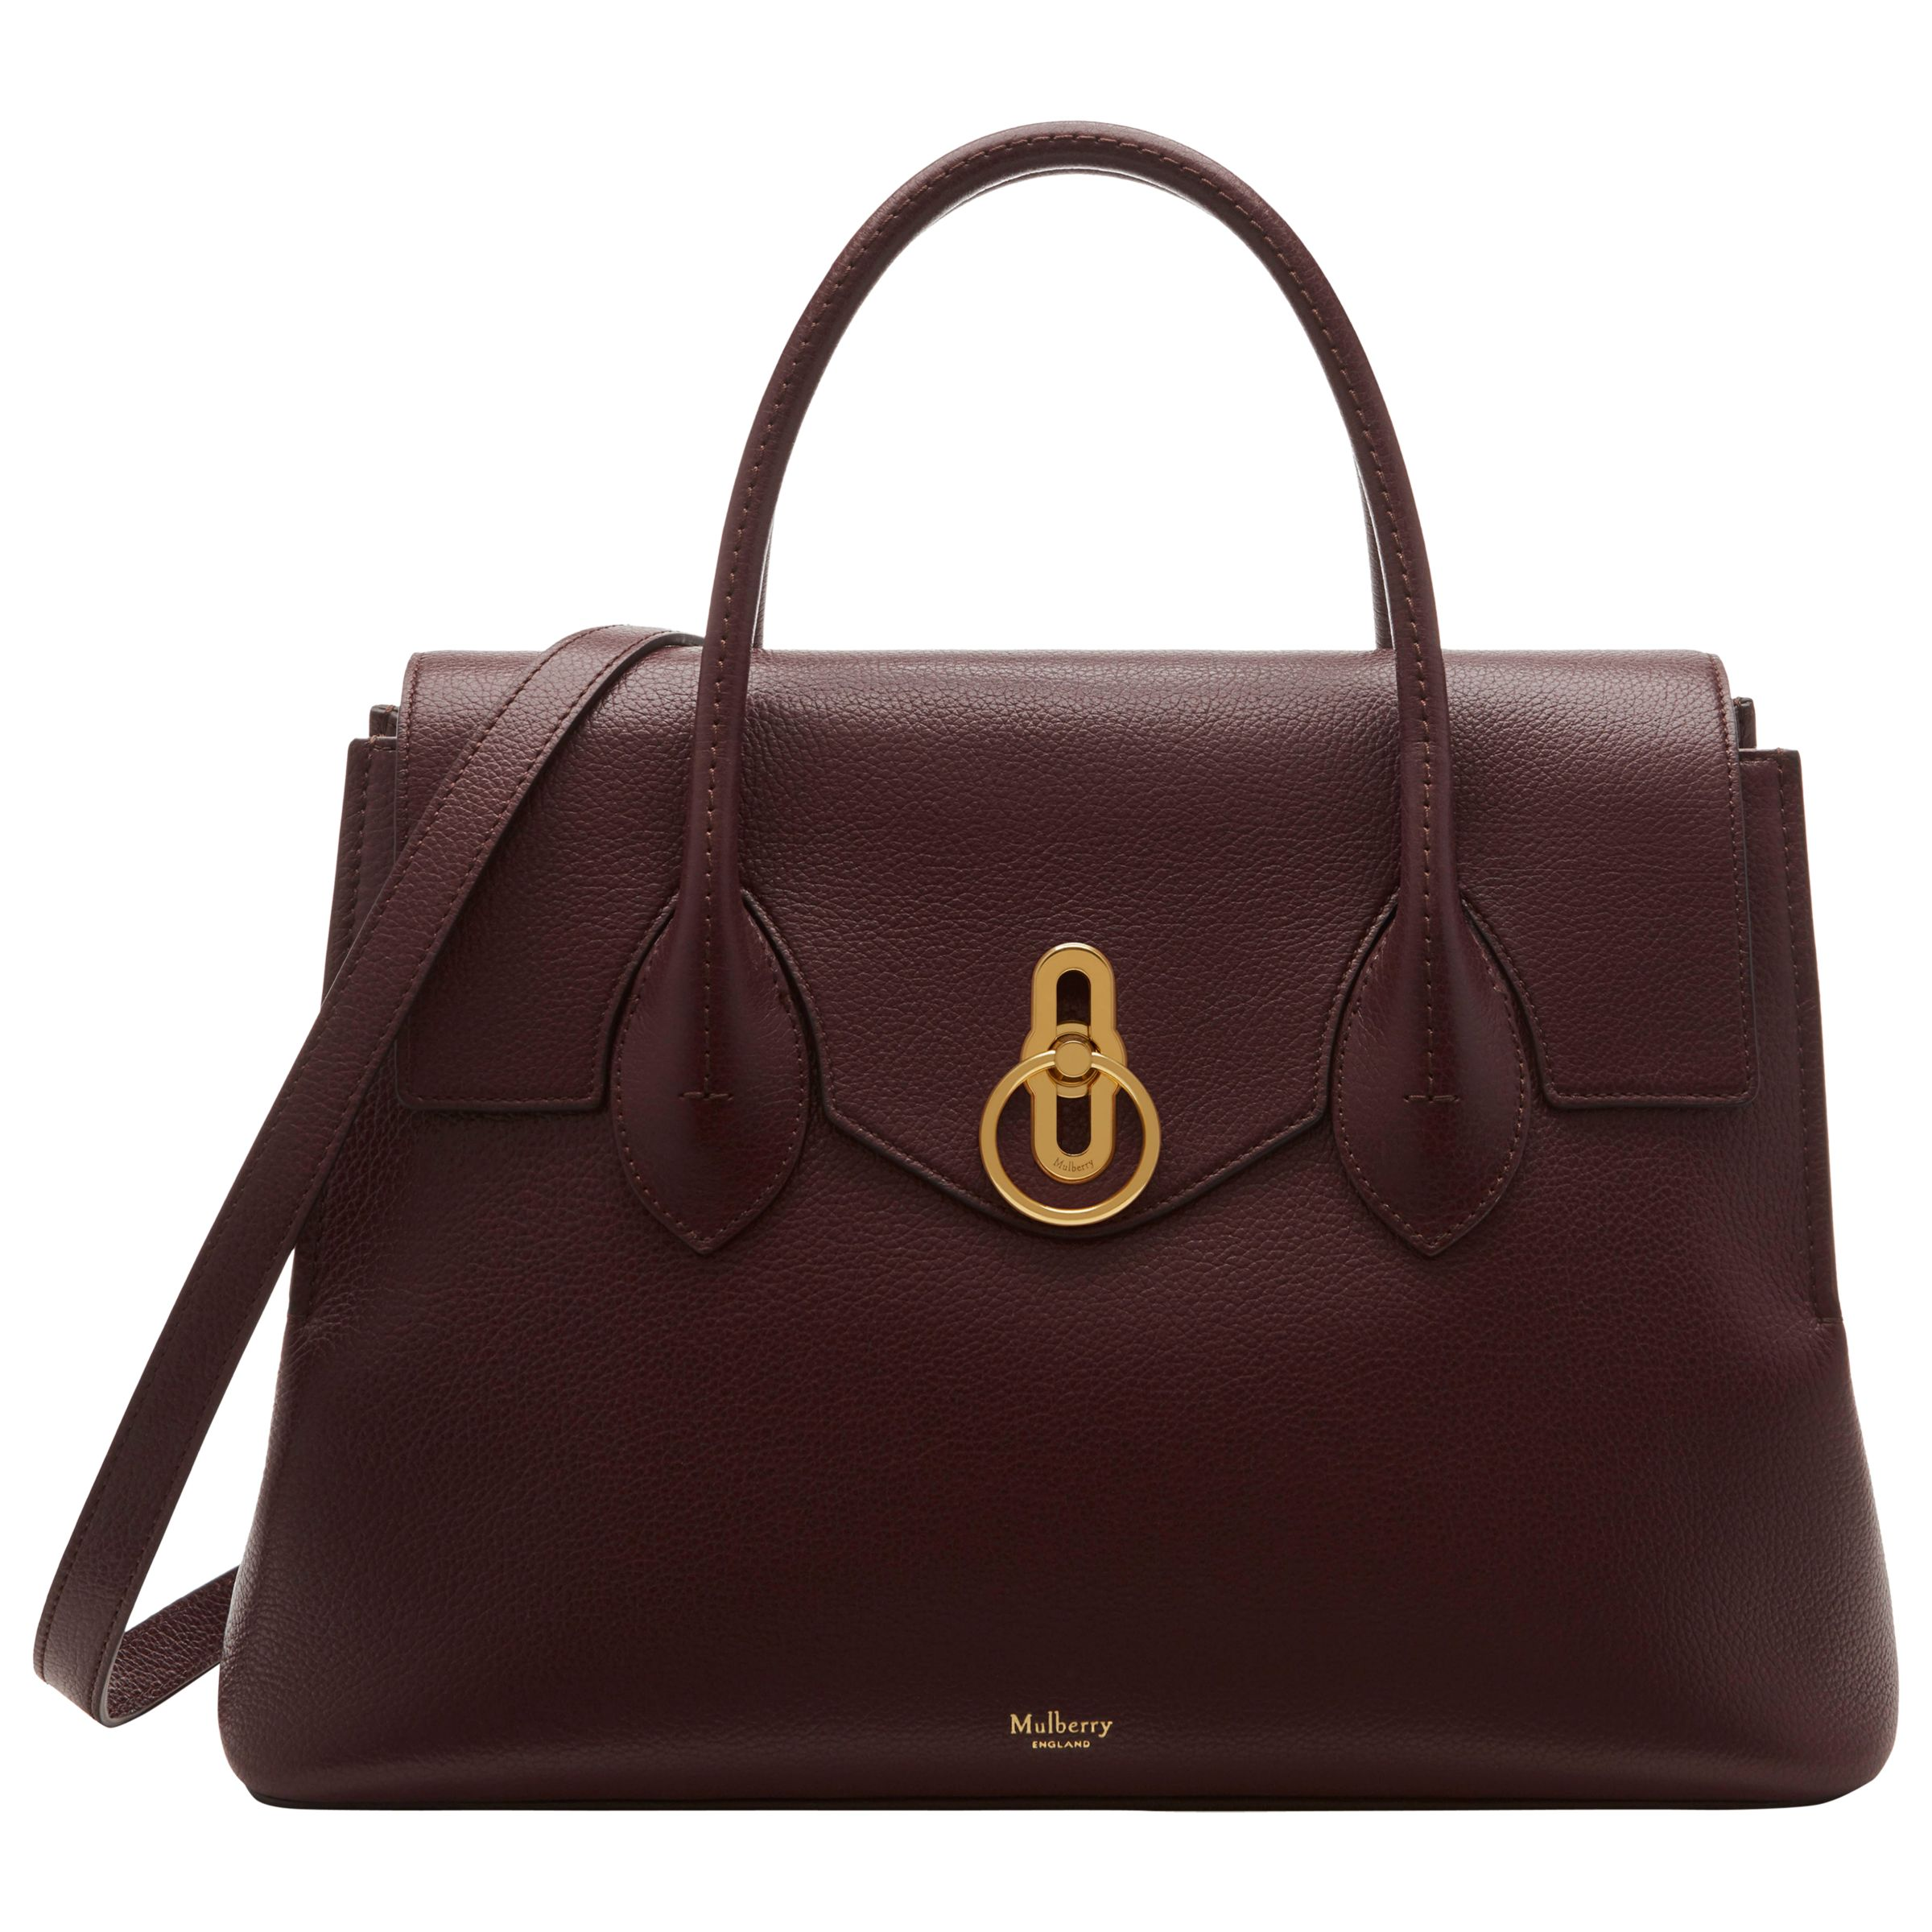 ... bag multi a3019 9f207 free shipping mulberry seaton leather satchel at  john lewis partners 90737 0b3f8 ... a9d20c85b973b